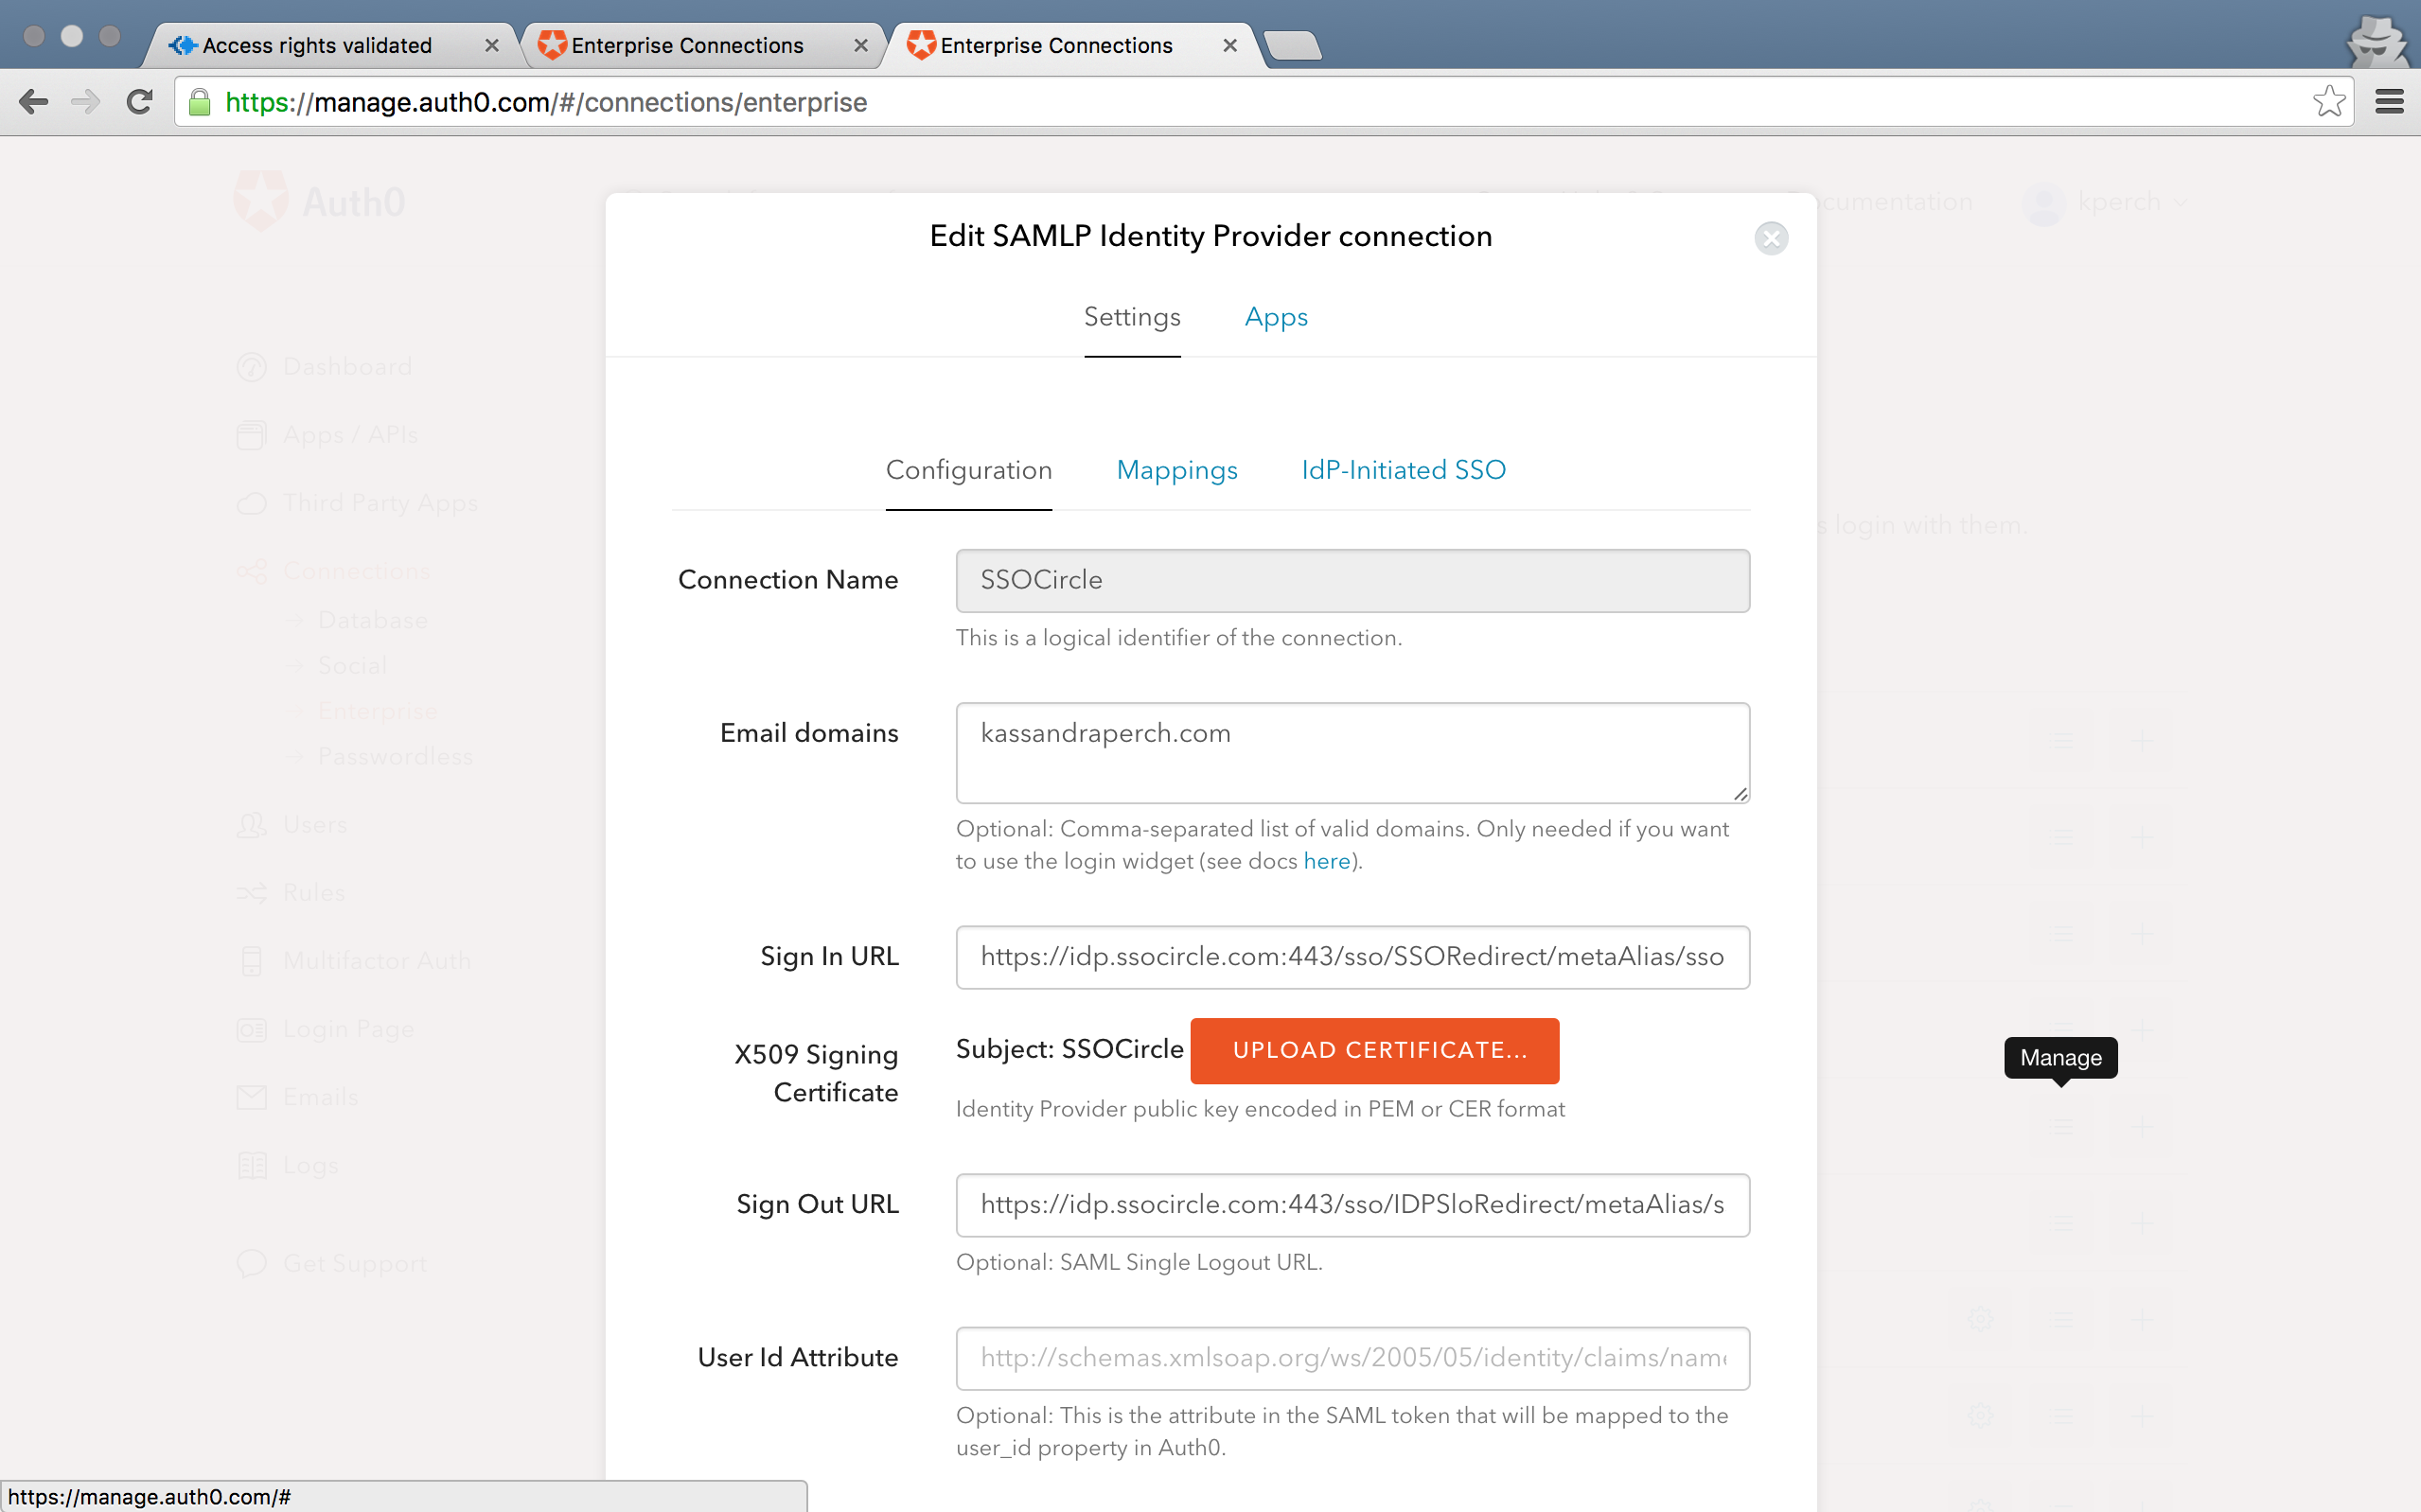 SAML Authentication Configuration Window